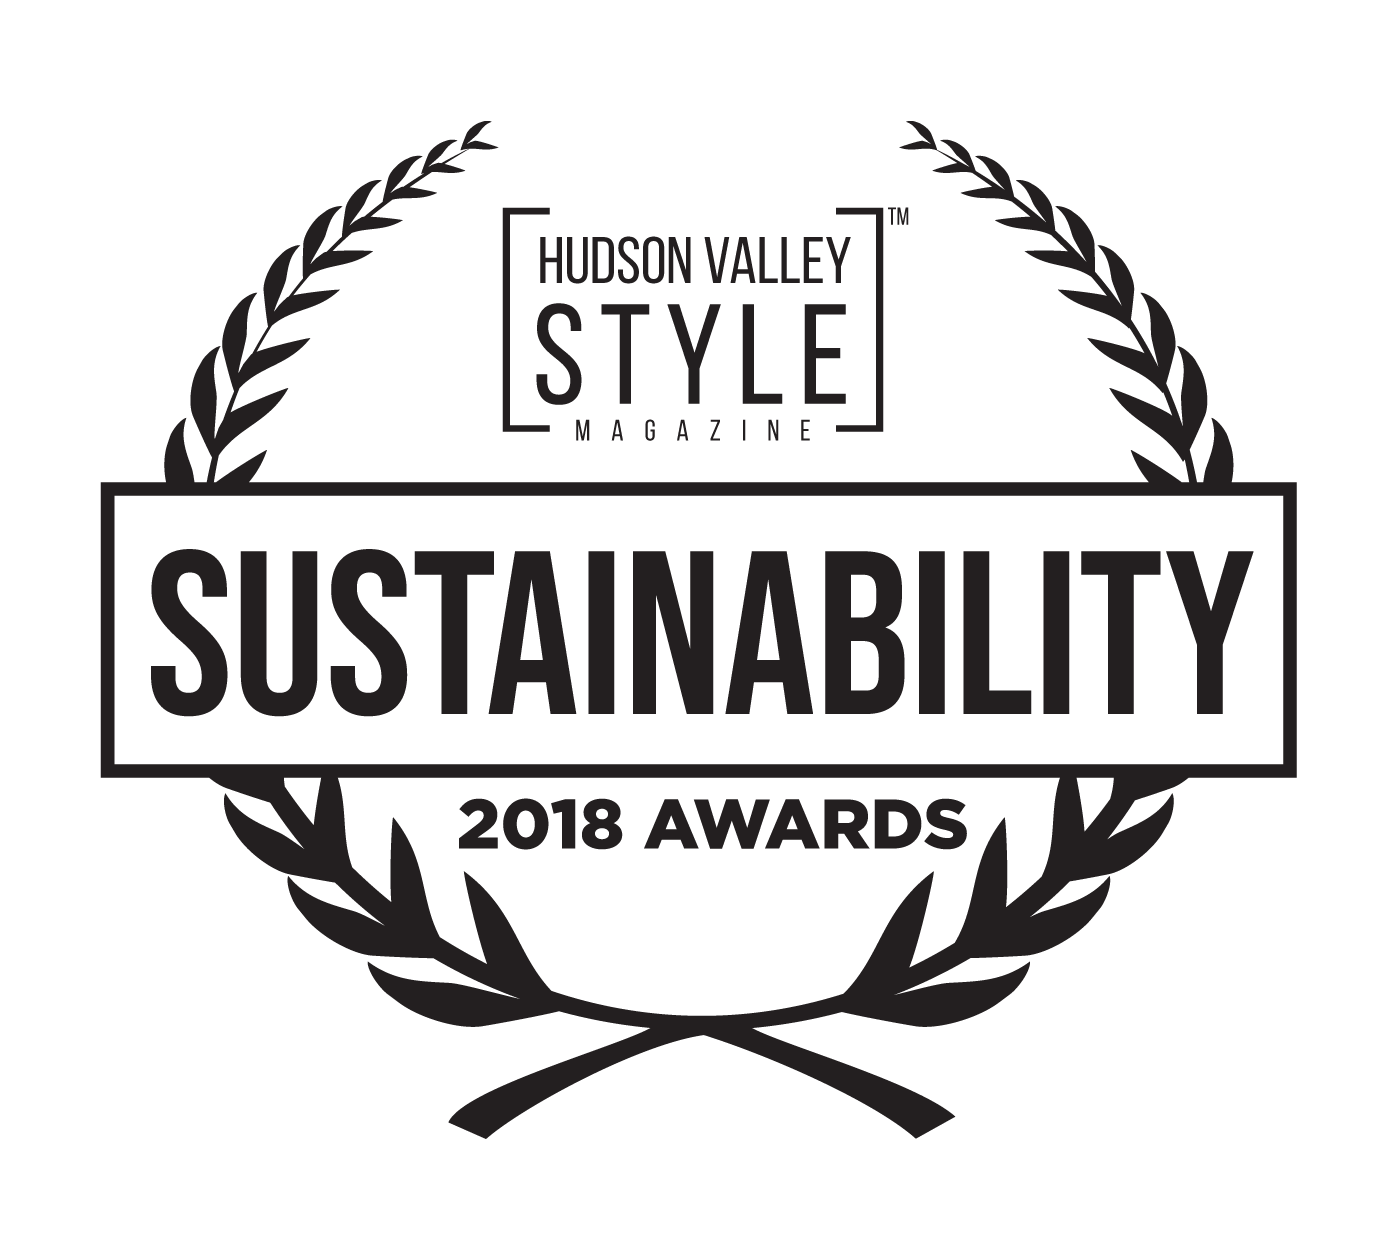 Hudson Valley Style Magazine Awards: Sustainable Design